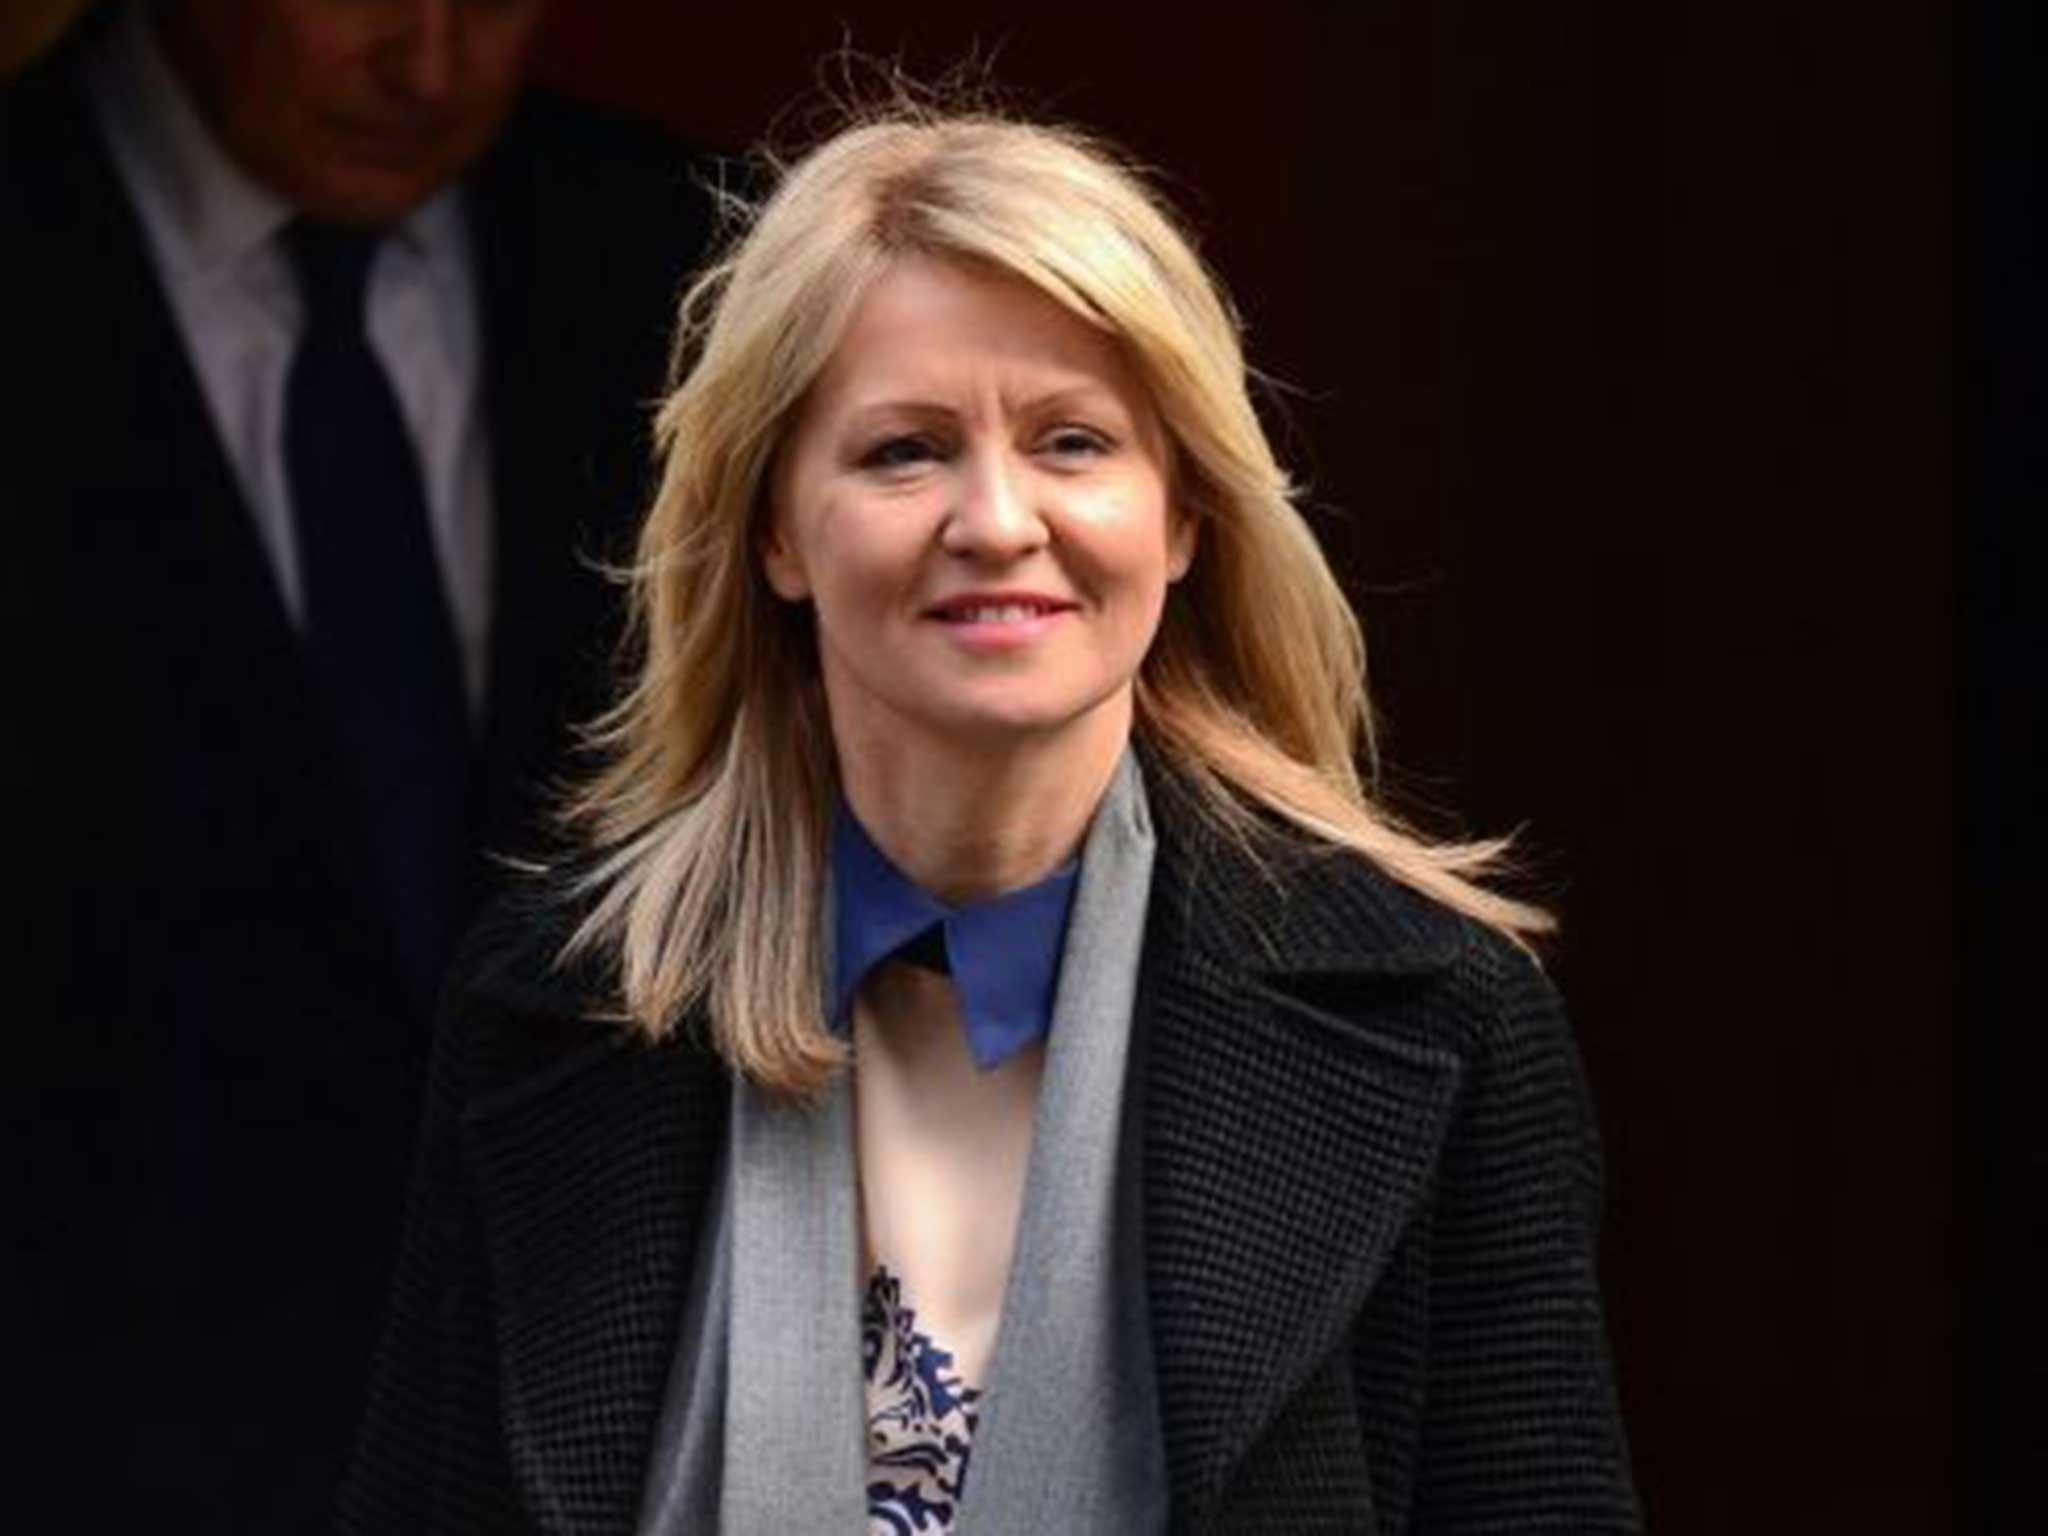 DWP minister Esther McVey losing her seat at the election was a